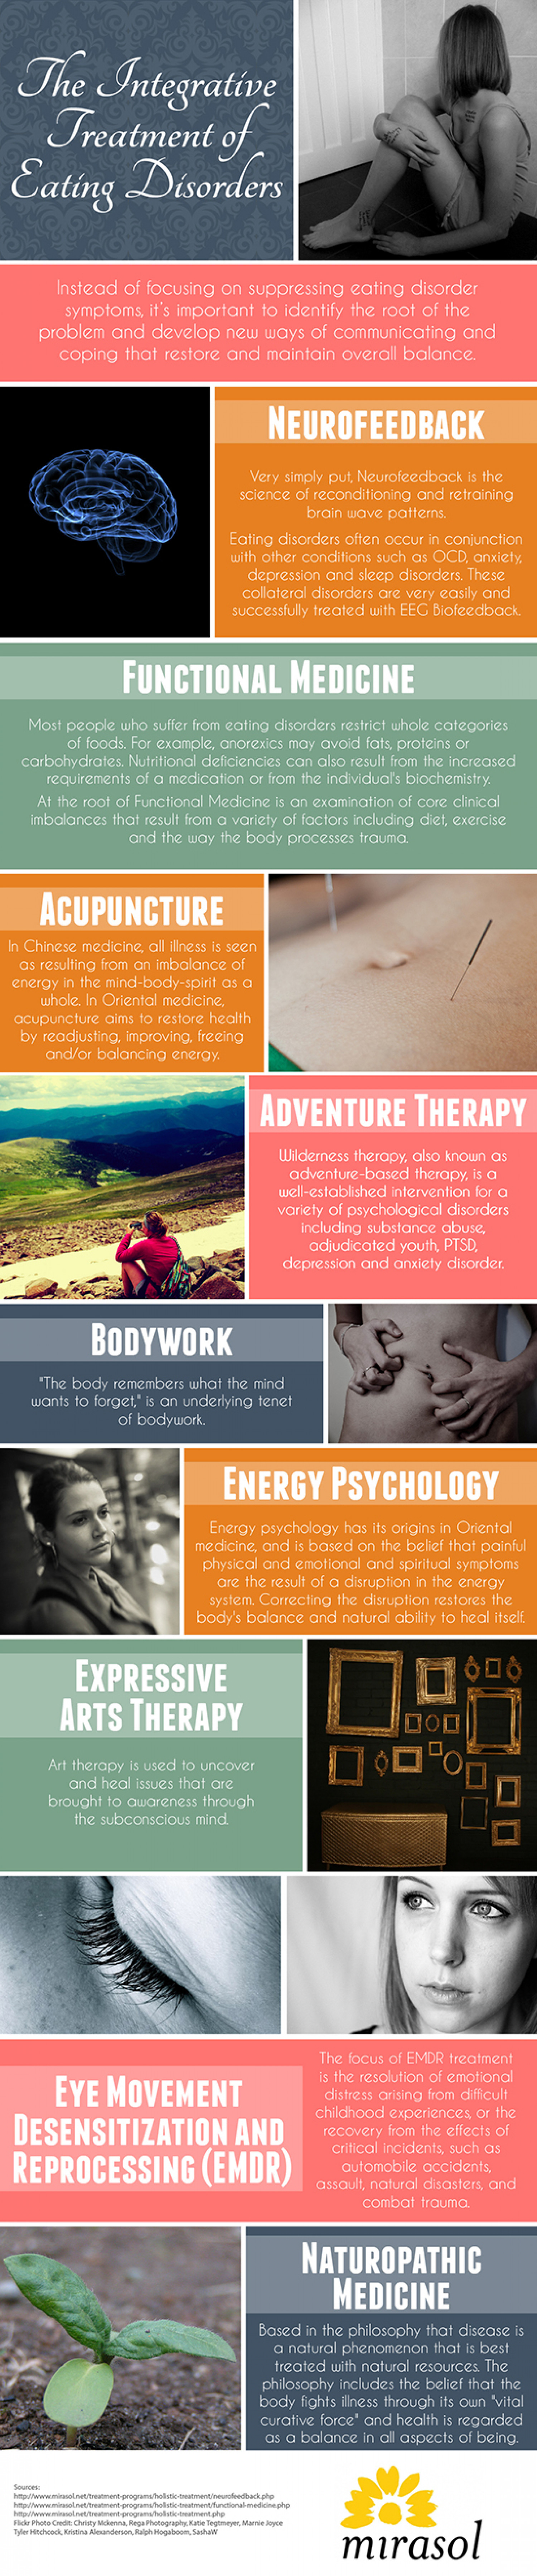 The Integrative Treatment of Eating Disorders Infographic